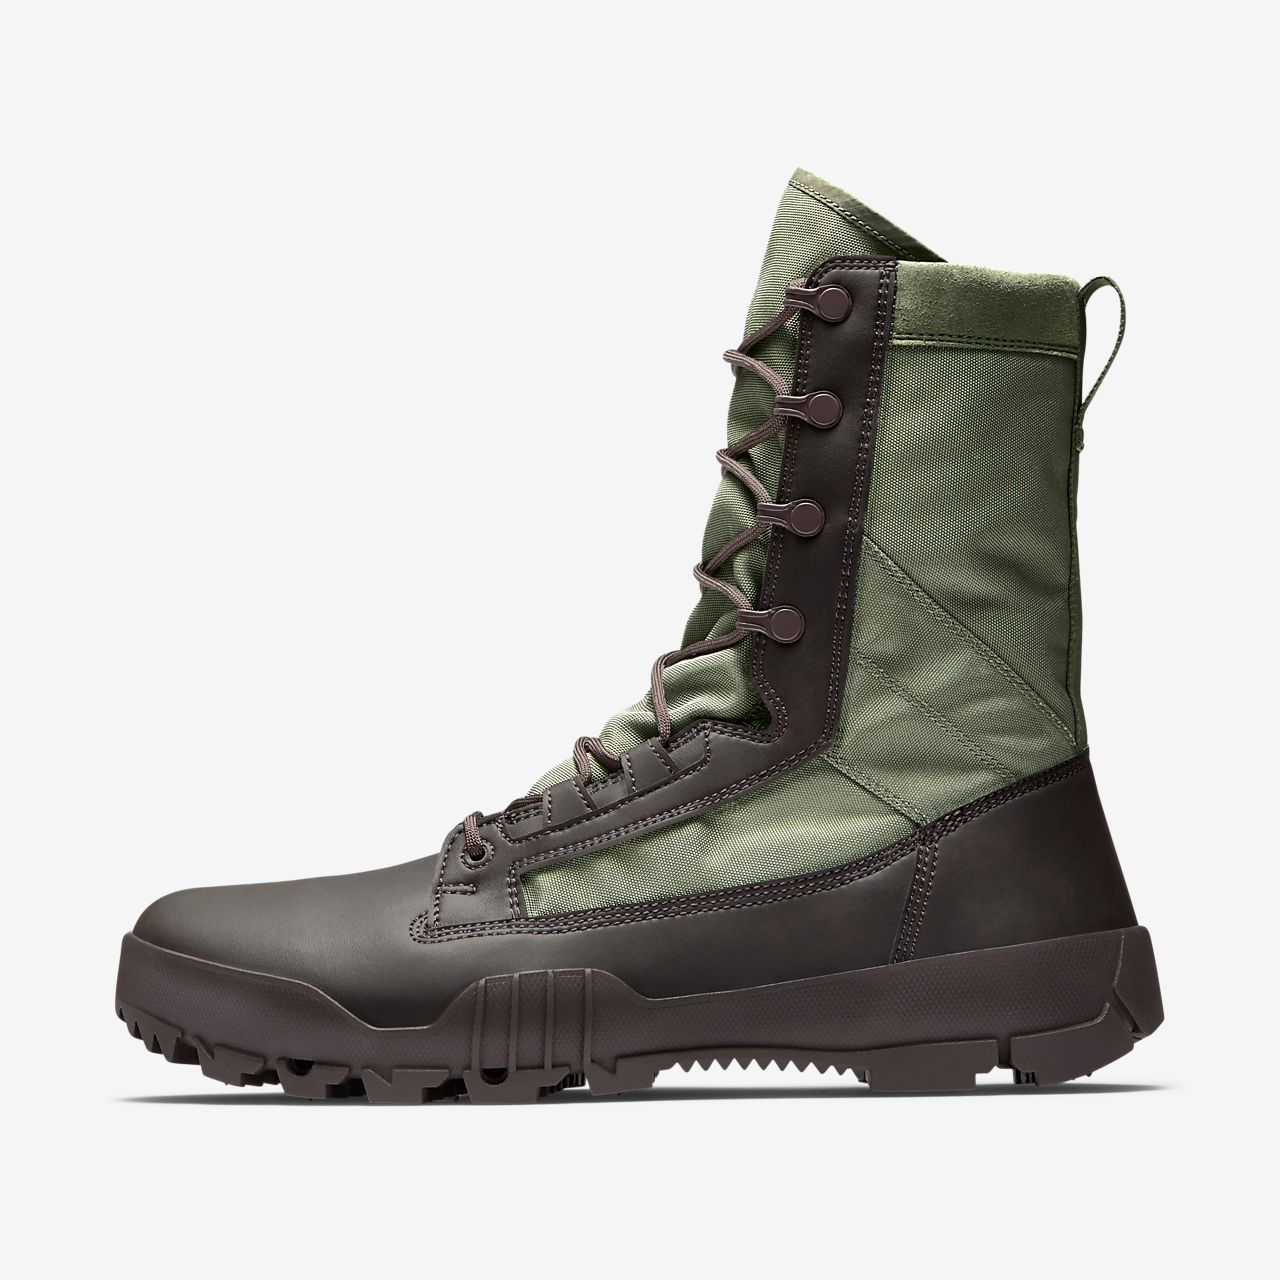 Nike SFB Jungle Boots Baroque Brown/Medium Olive